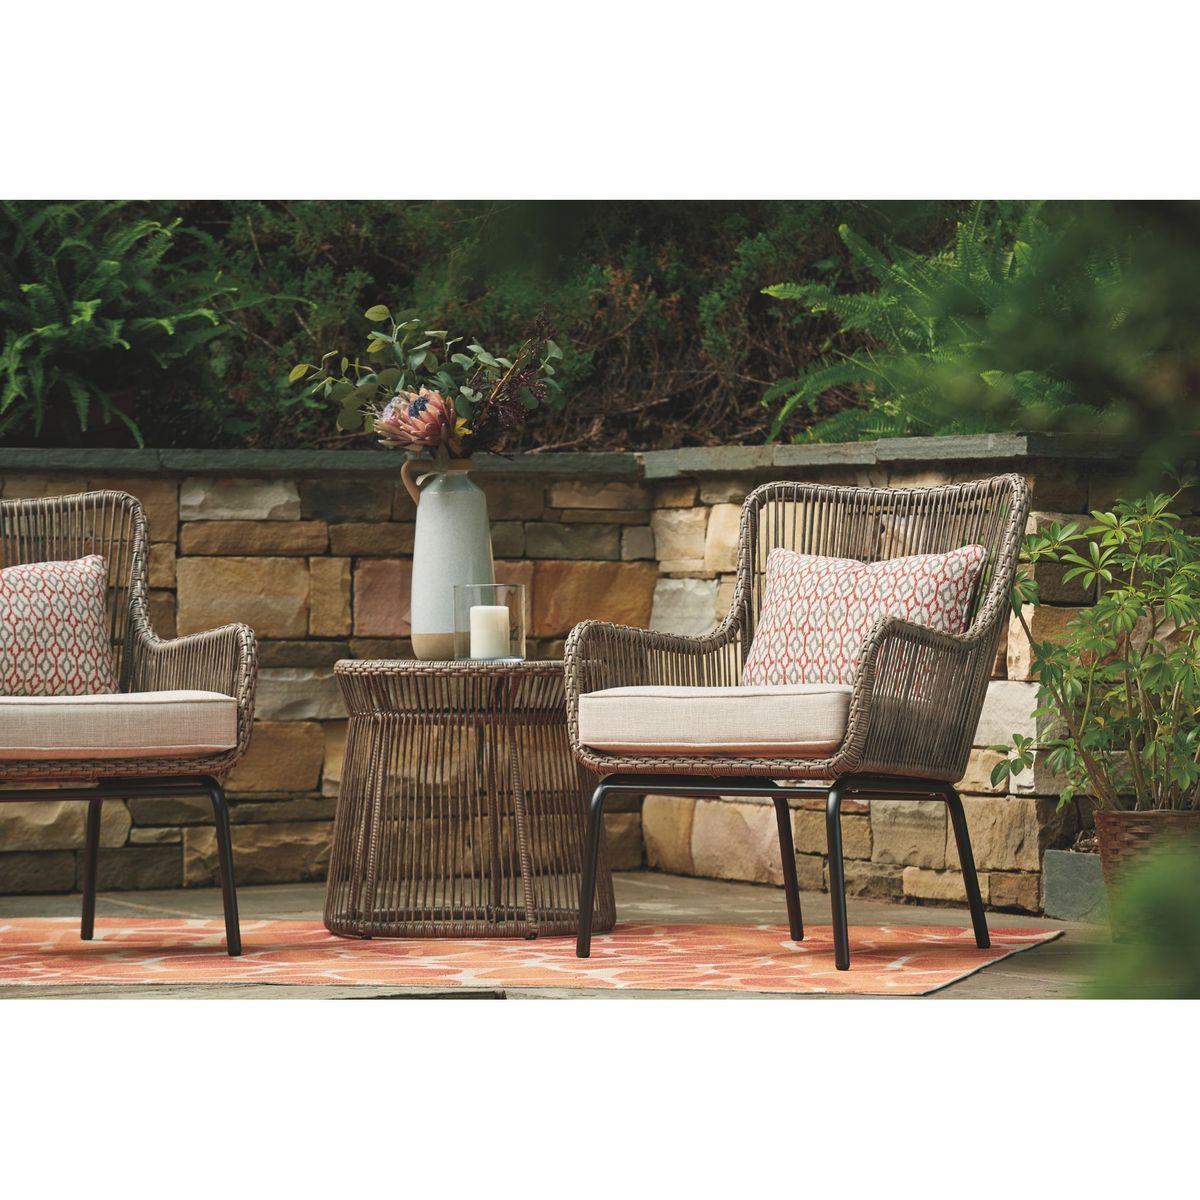 Cotton Road Table And Pair Of Chairs Brown In 2021 Outdoor Patio Decor Patio Set Outdoor Table Settings